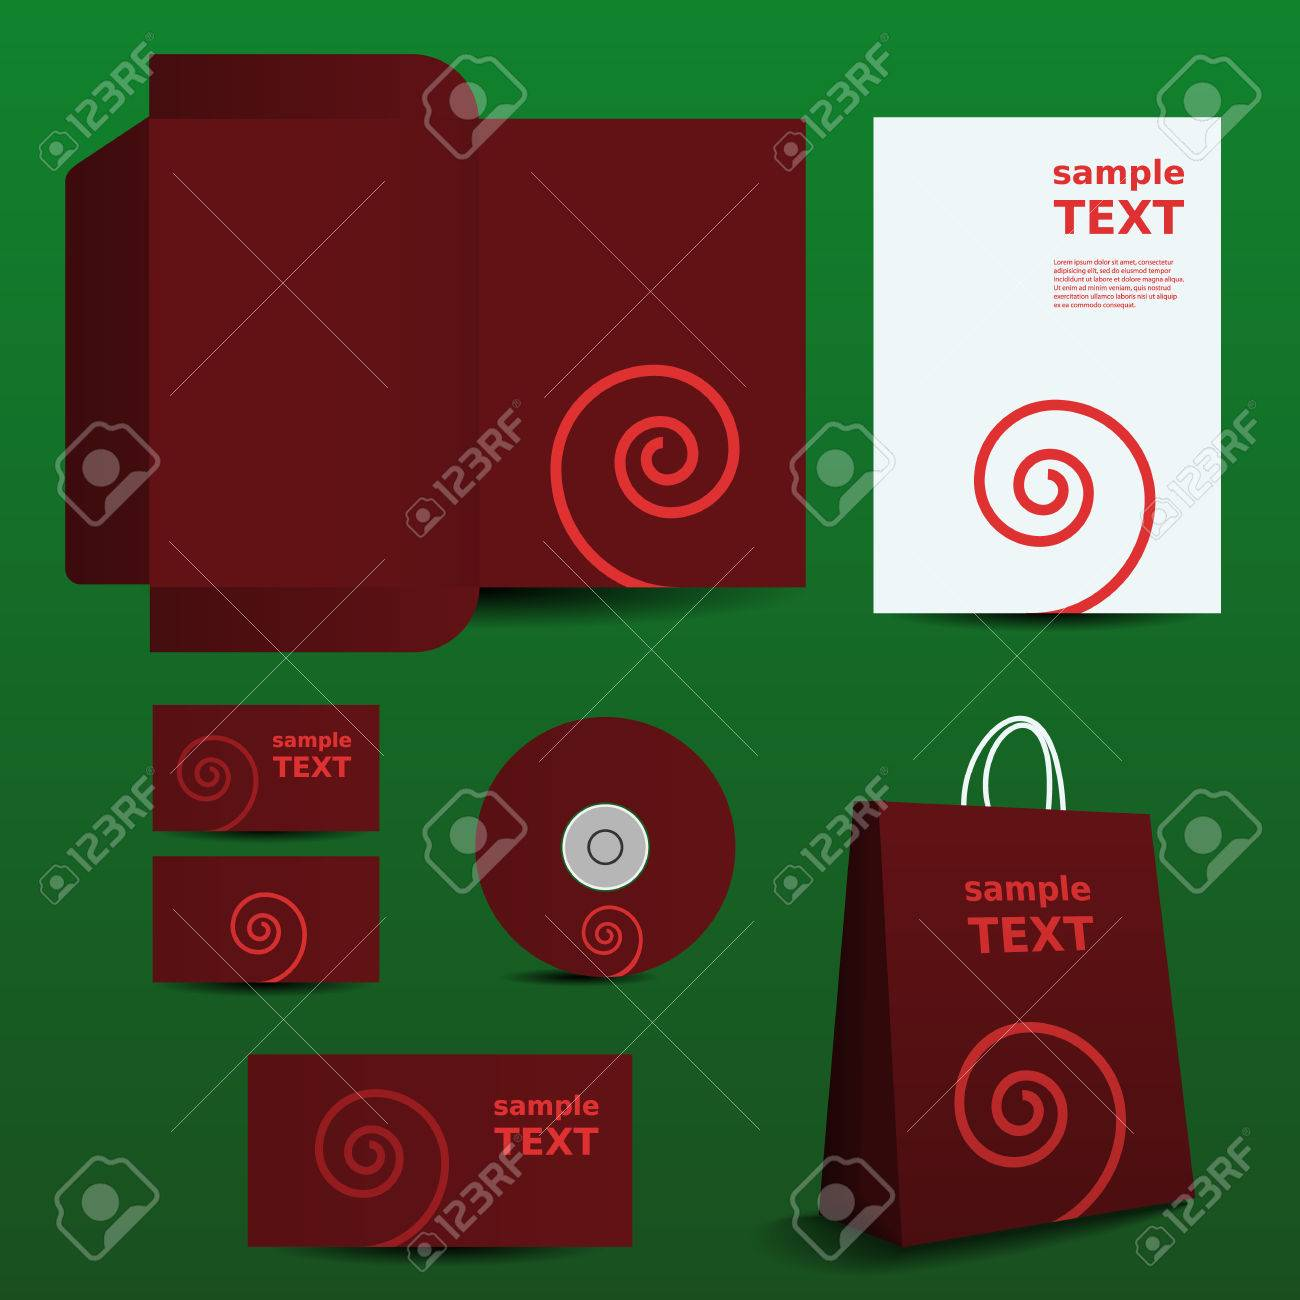 Stationery, Corporate Image Design with Twisted Pattern Stock Vector - 26146911